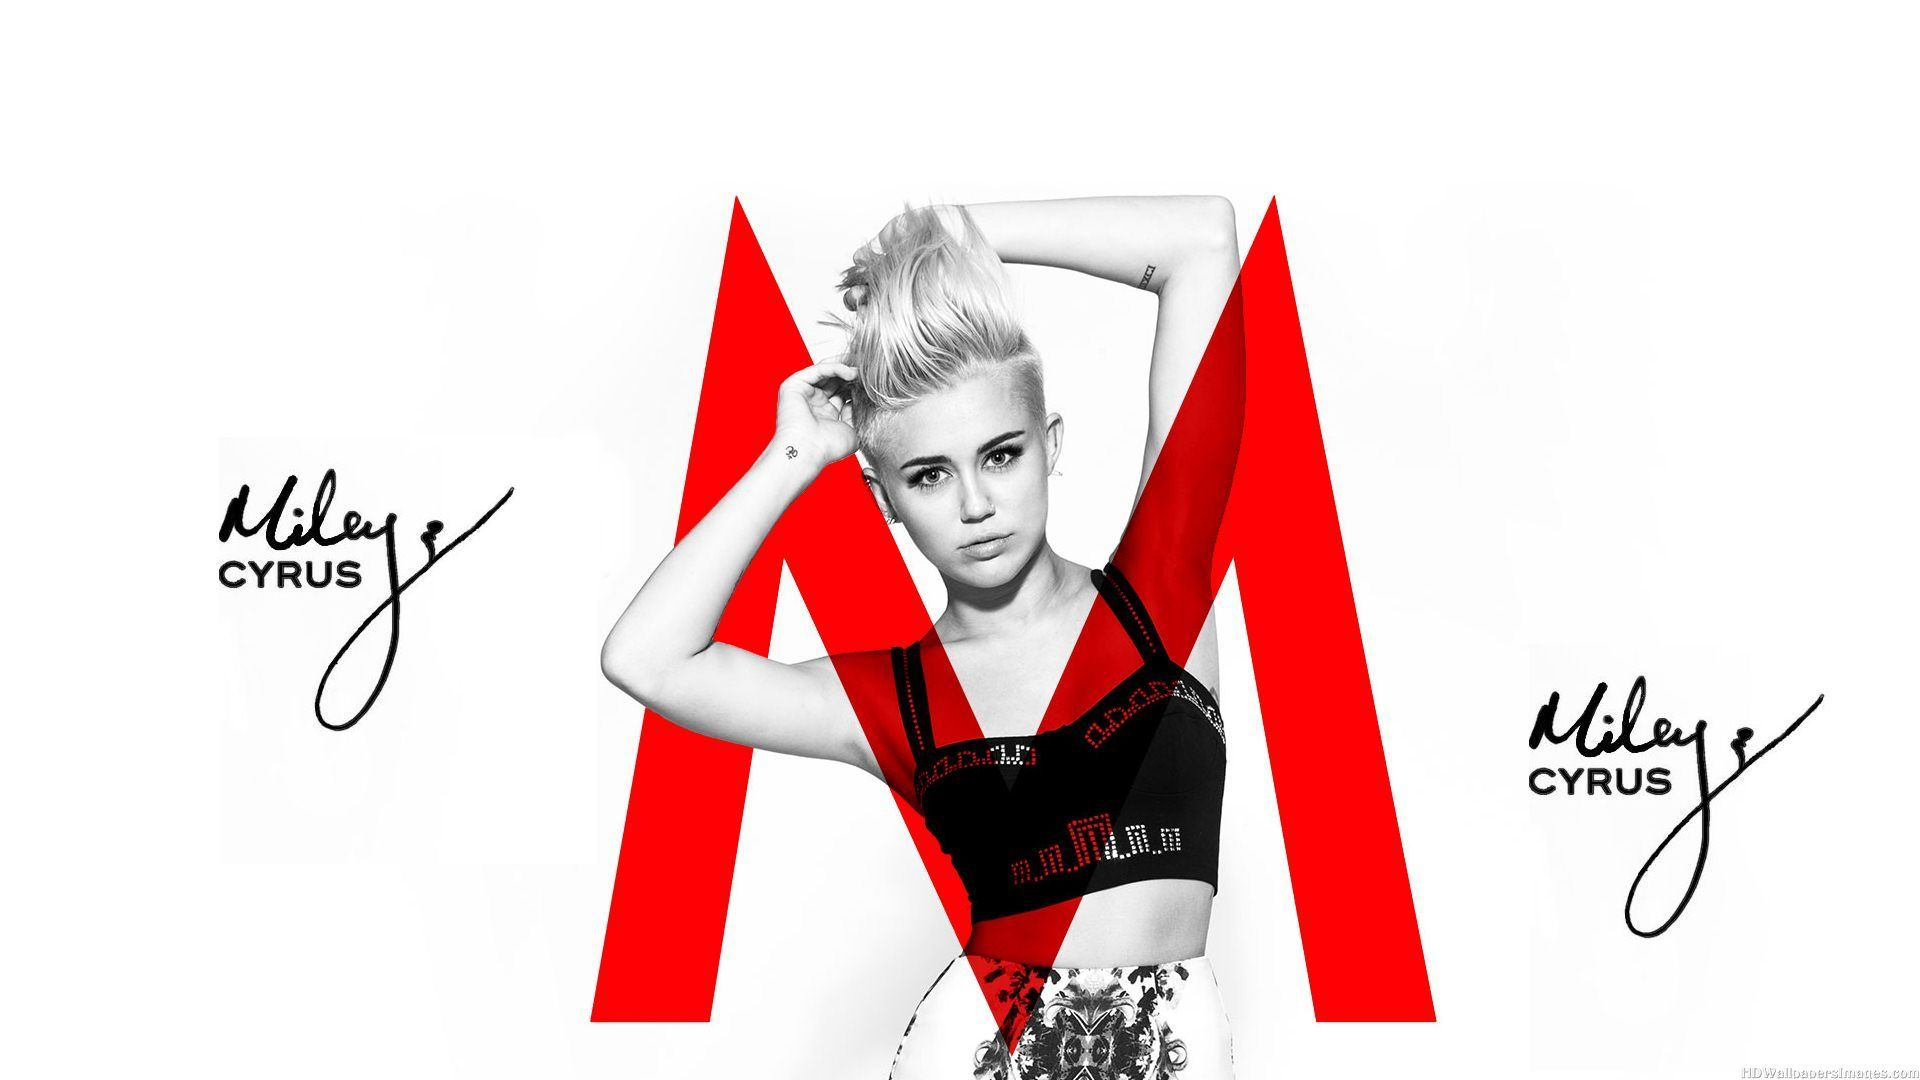 miley cyrus hd wallpapers : get free top quality miley cyrus hd